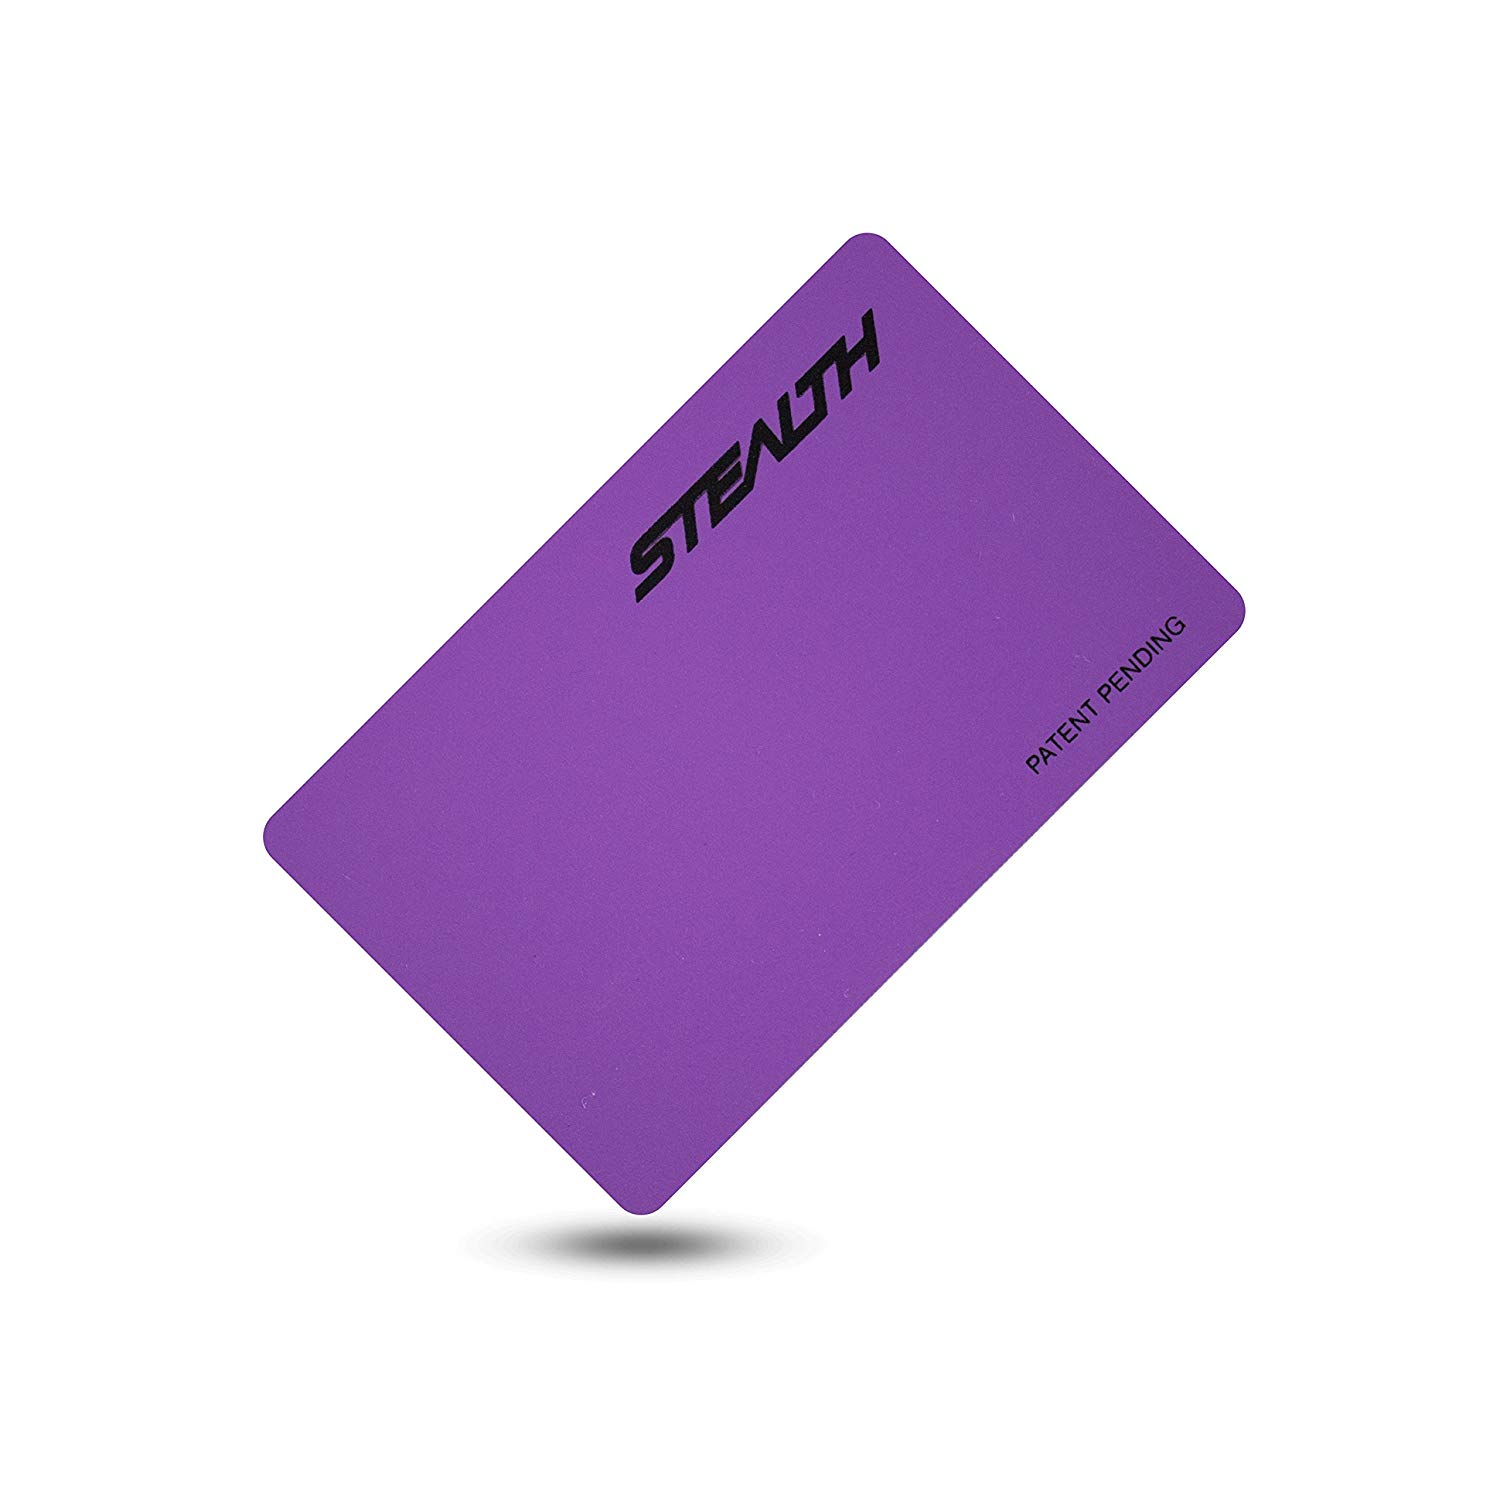 4e7f2a4e2cc8 Buy Stealth Card RFID Blocking Card - 1 Stealth Card Protects up to ...